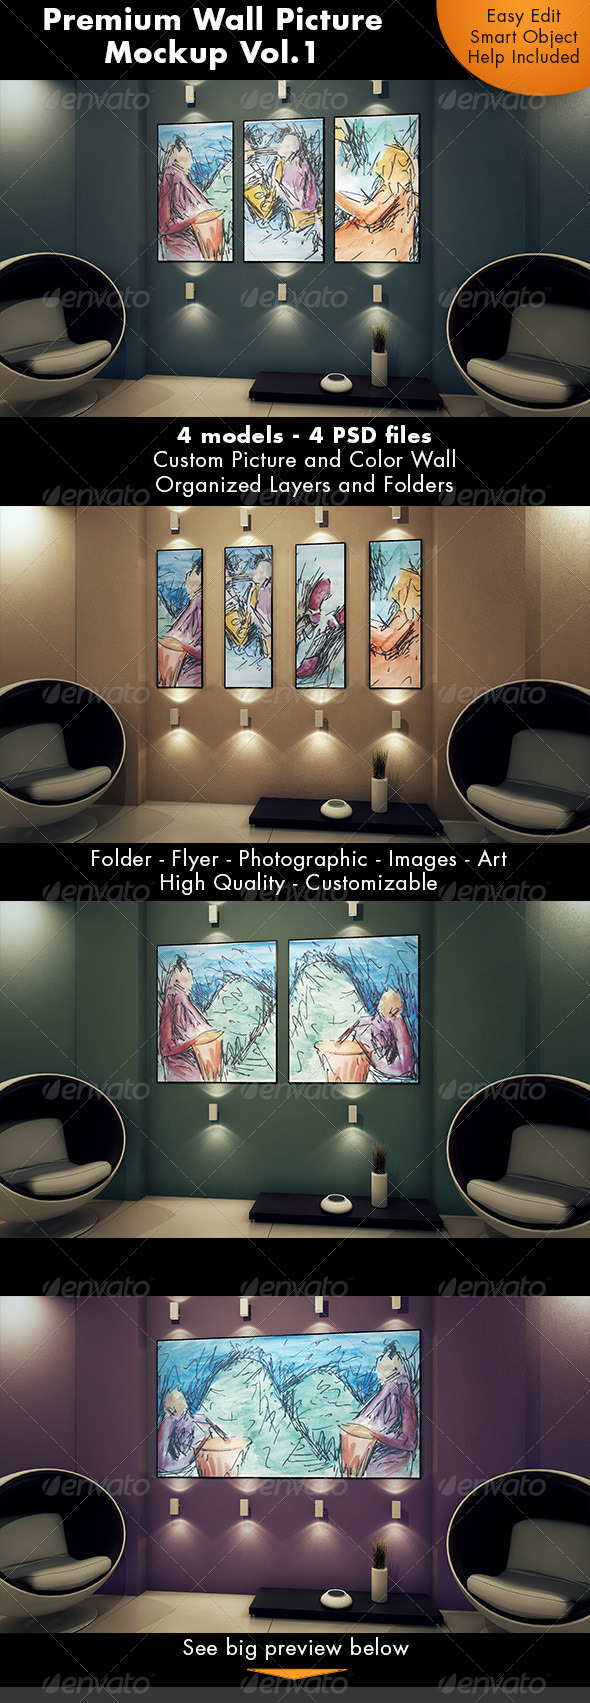 Wall Picture Mockup Vol.1